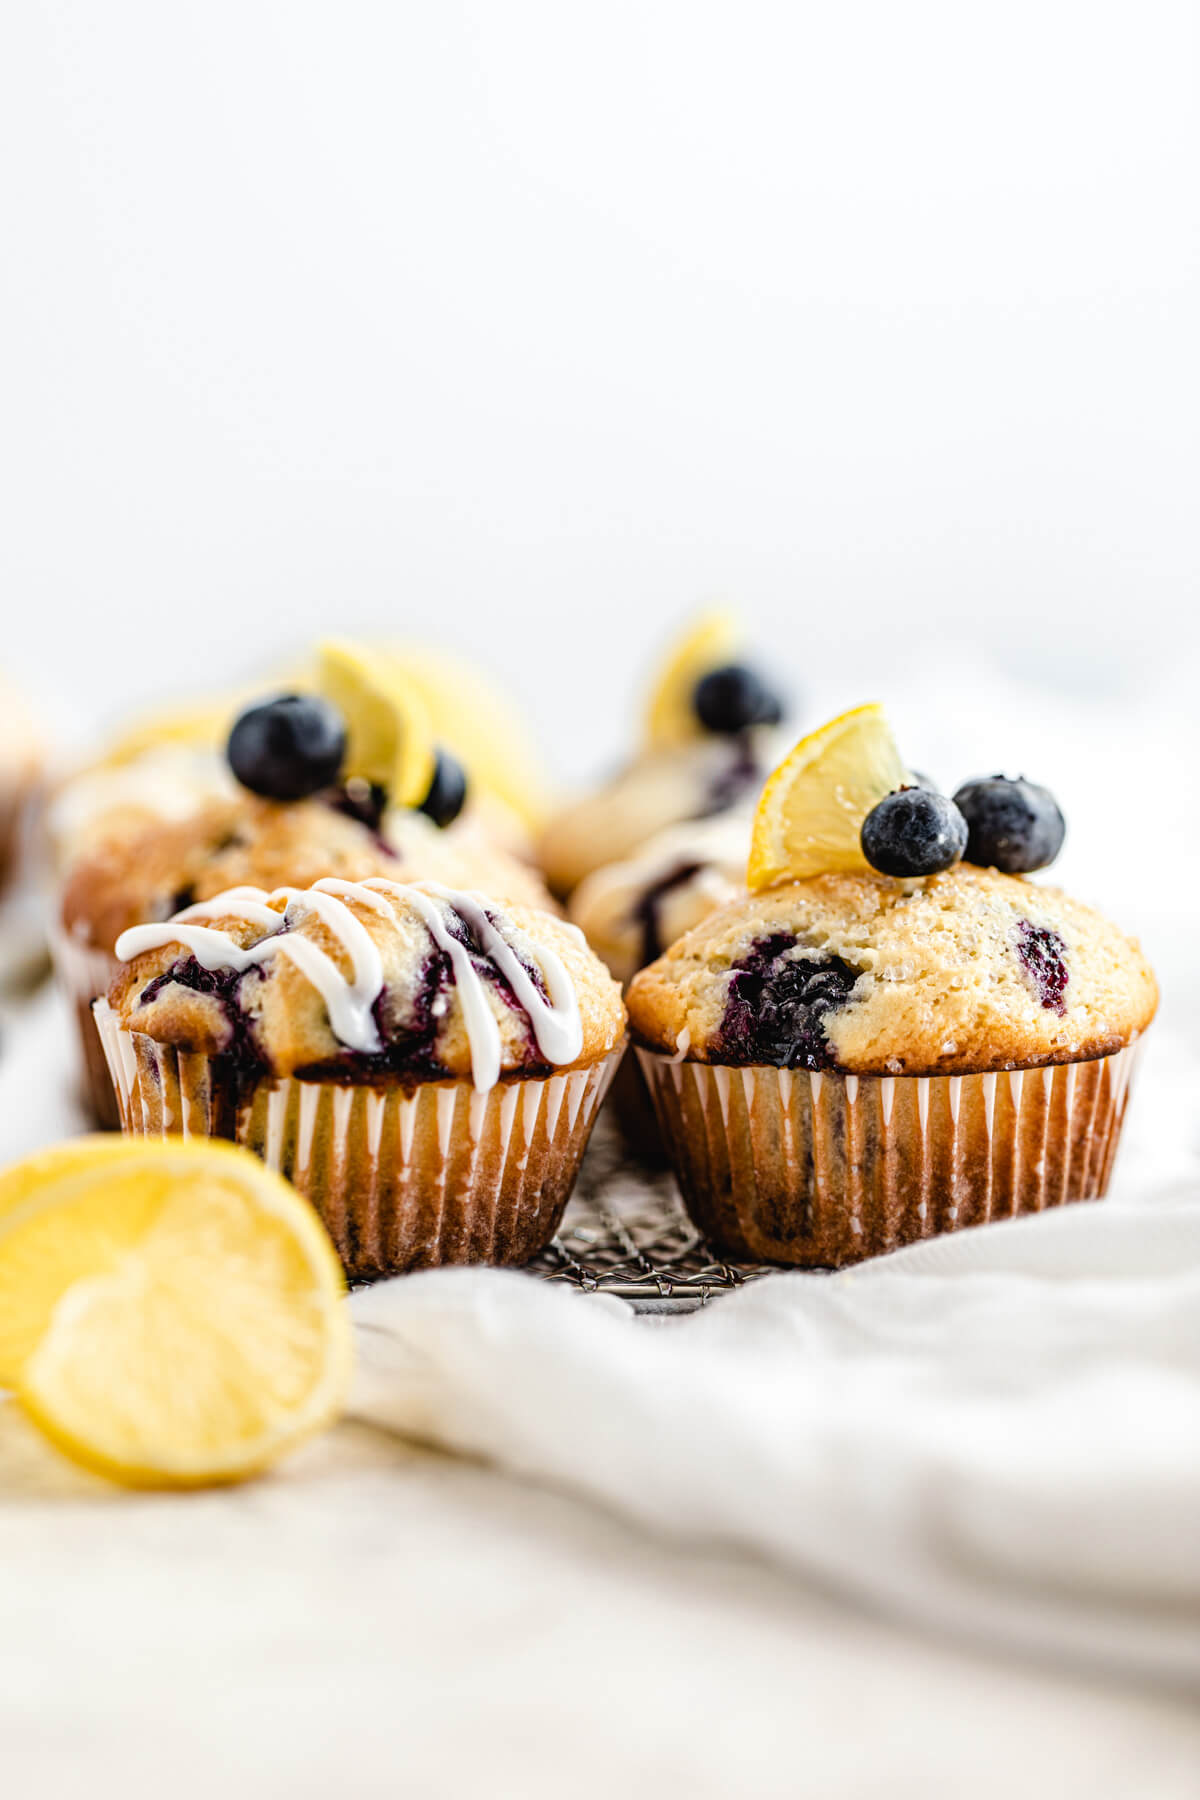 blueberry muffins lined up on a safety grater with lemon twist in front of them